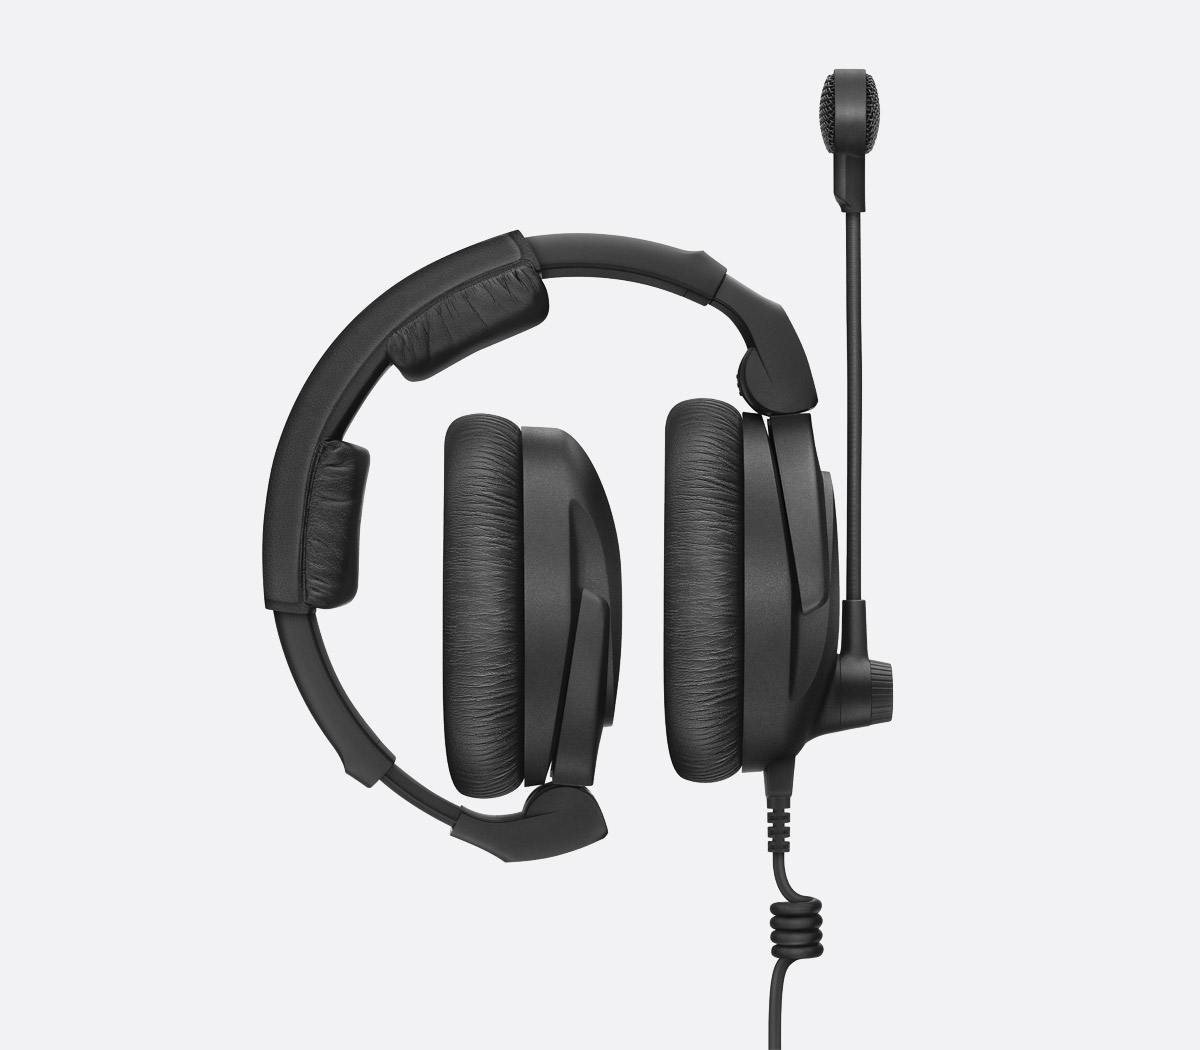 3c2224c64ad SENNHEISER HMD 300 PRO HEADSET Stereo 64 ohms, 300 ohm dynamic mic, without  cable